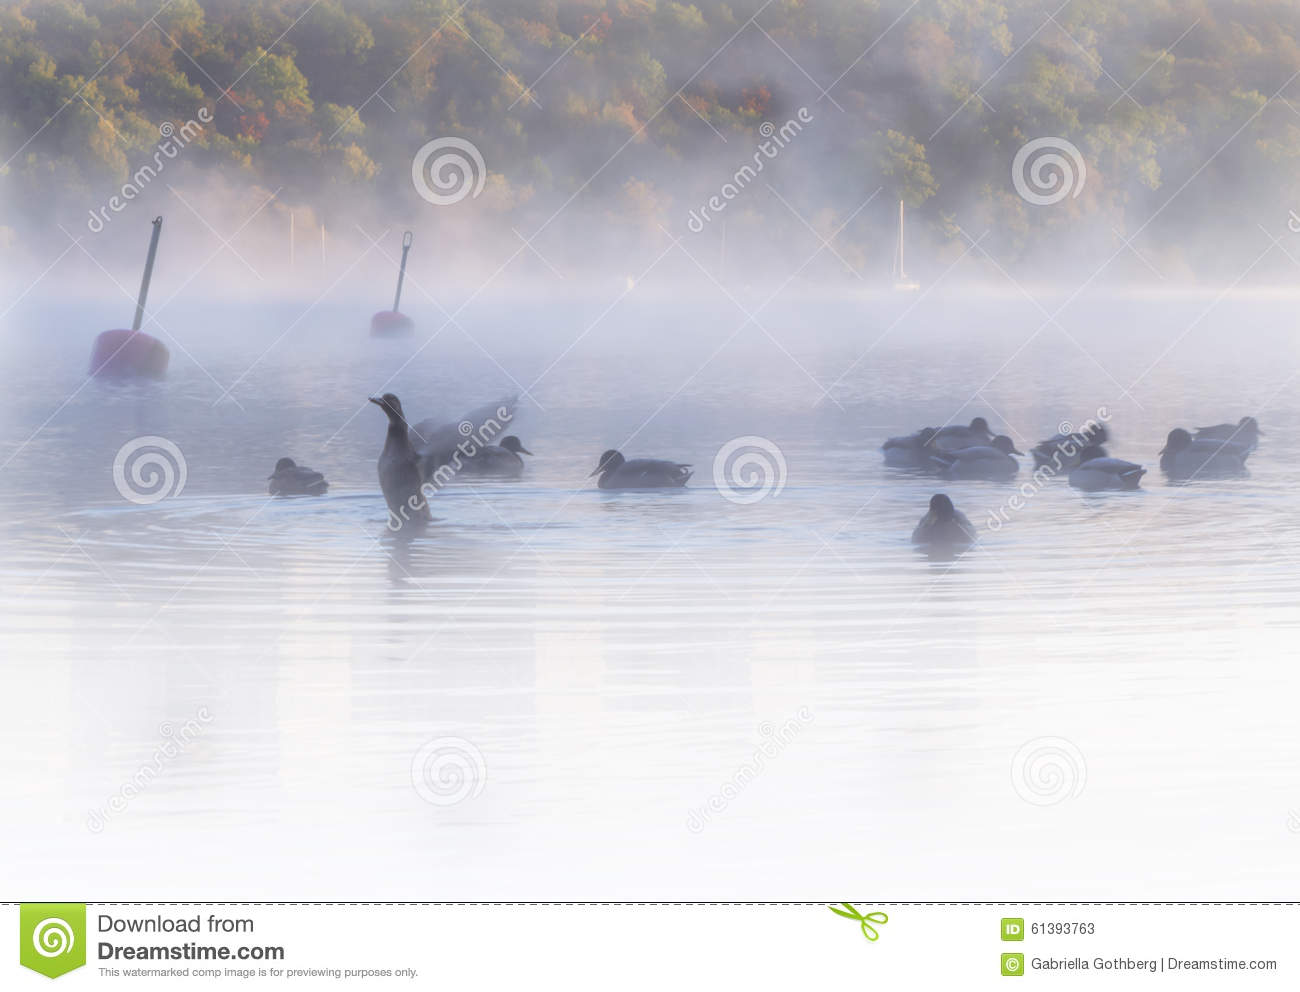 Flock of ducks in misty, dreamlike waters early dawn. Colorful autumn forest in background.